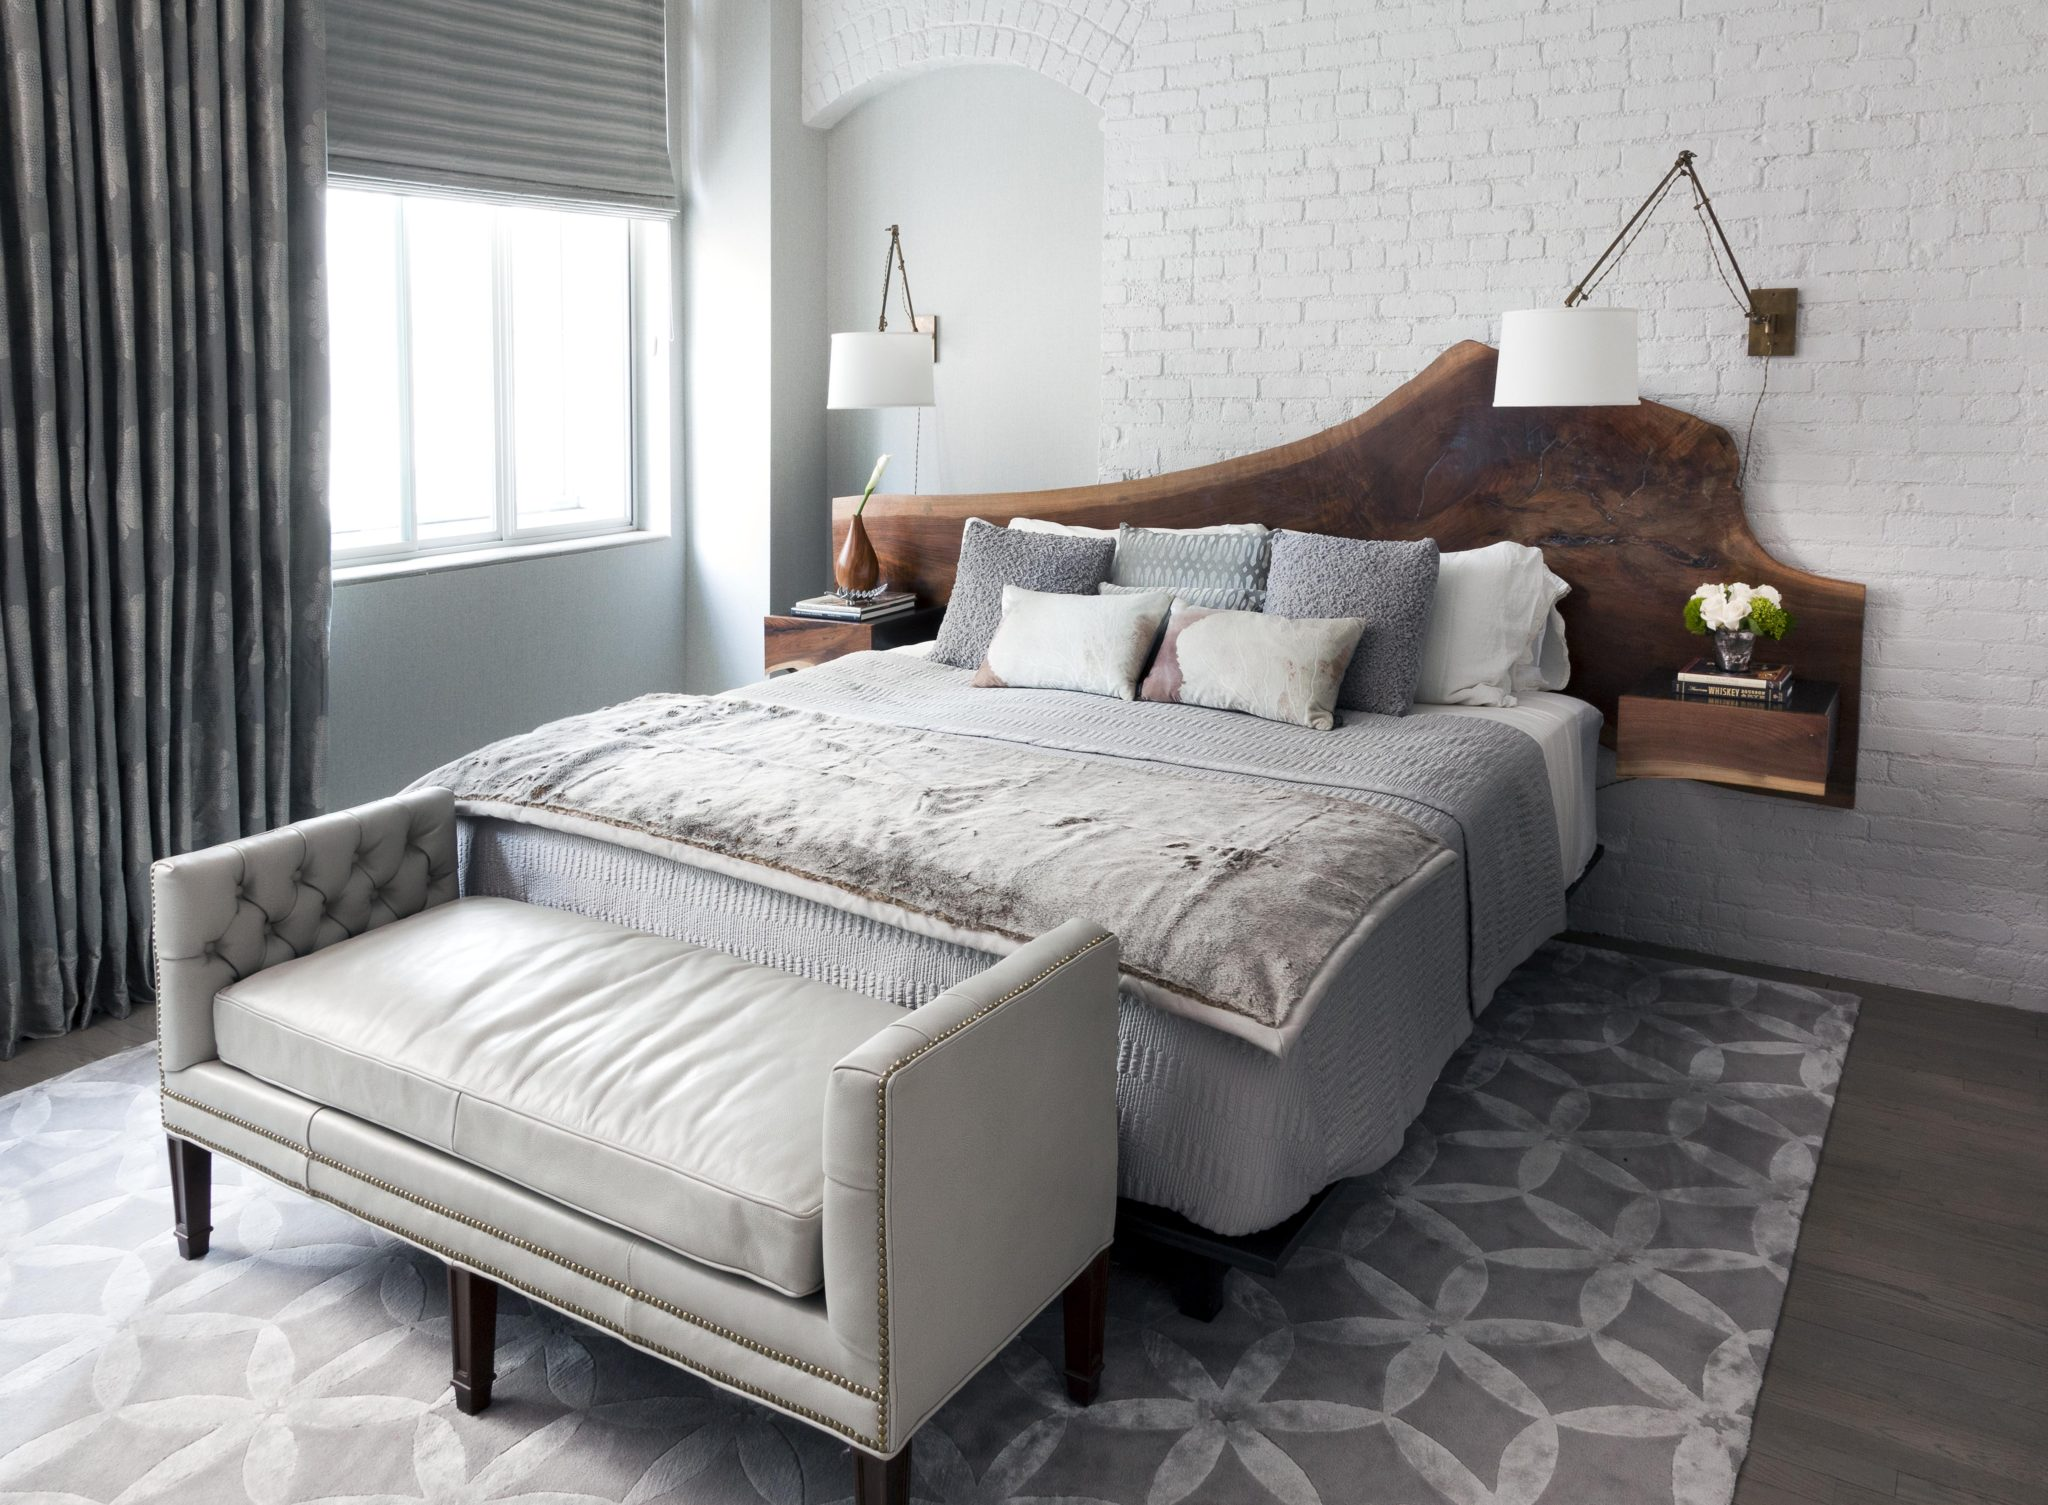 Tribeca Loft Master Bedroom with Live Edge Walnut Headboard by PURVI PADIA DESIGN